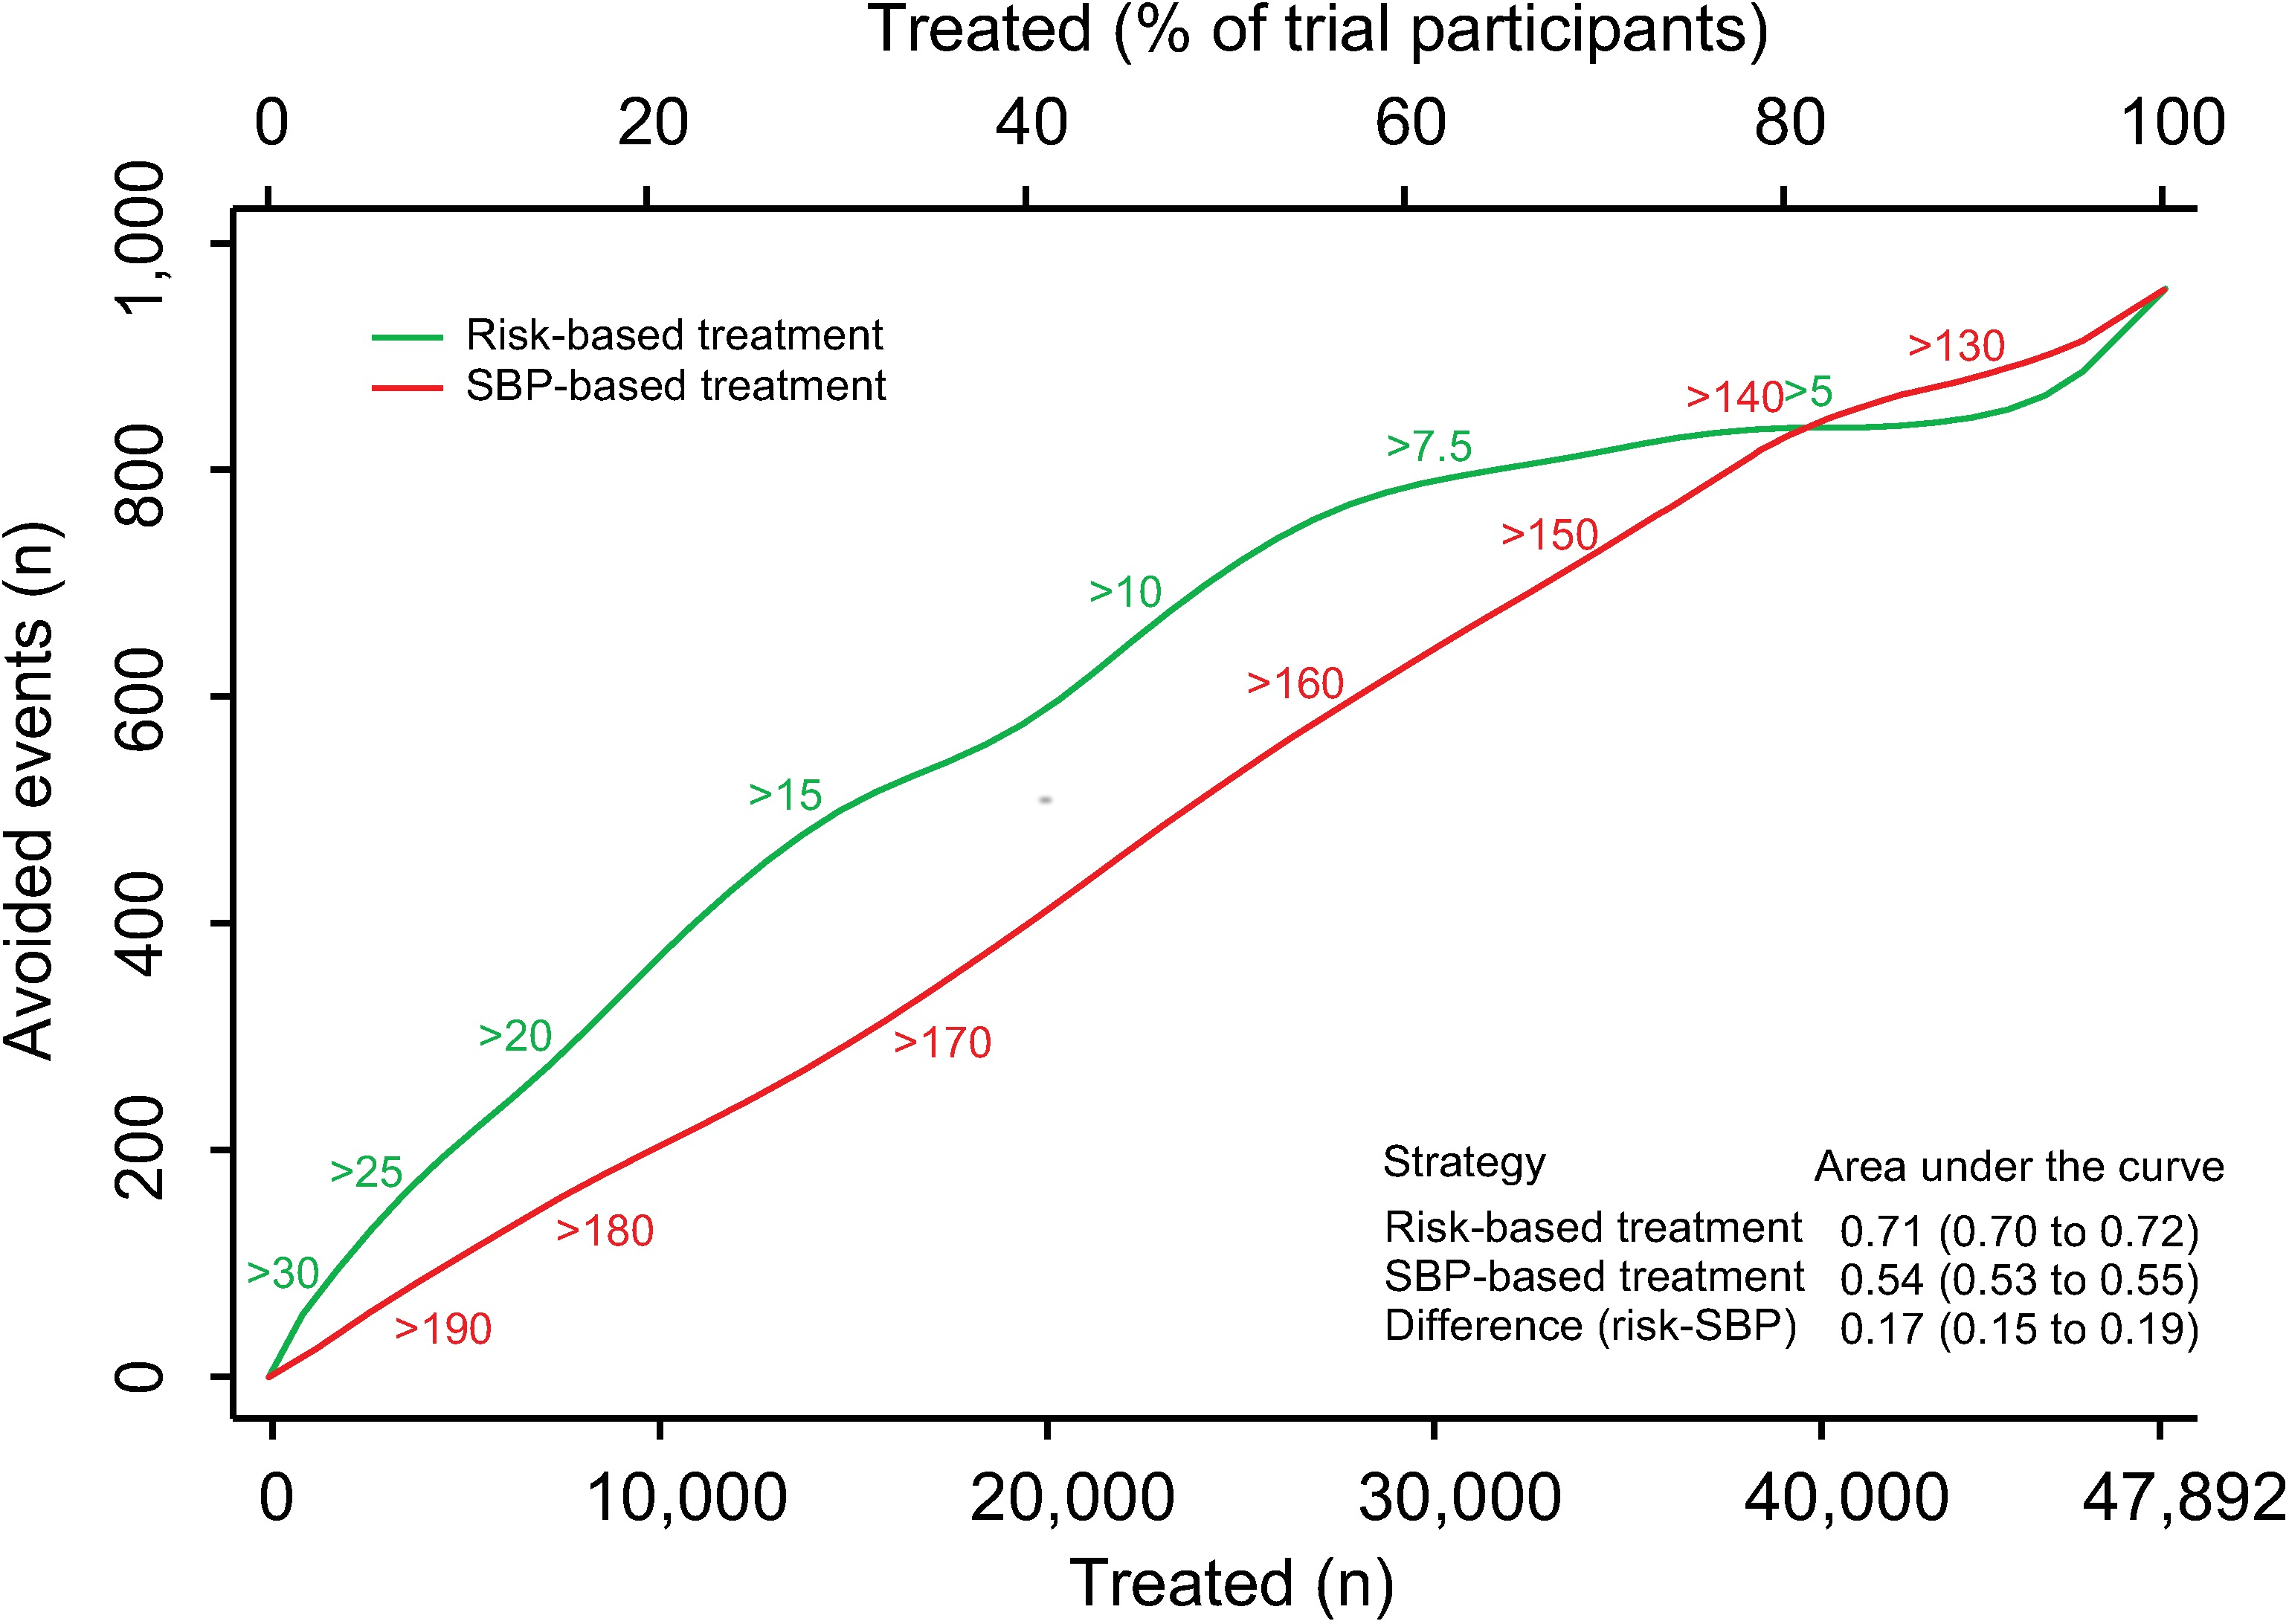 Effects of CVD risk and SBP treatment strategies on absolute number of cardiovascular events prevented over 5 y.